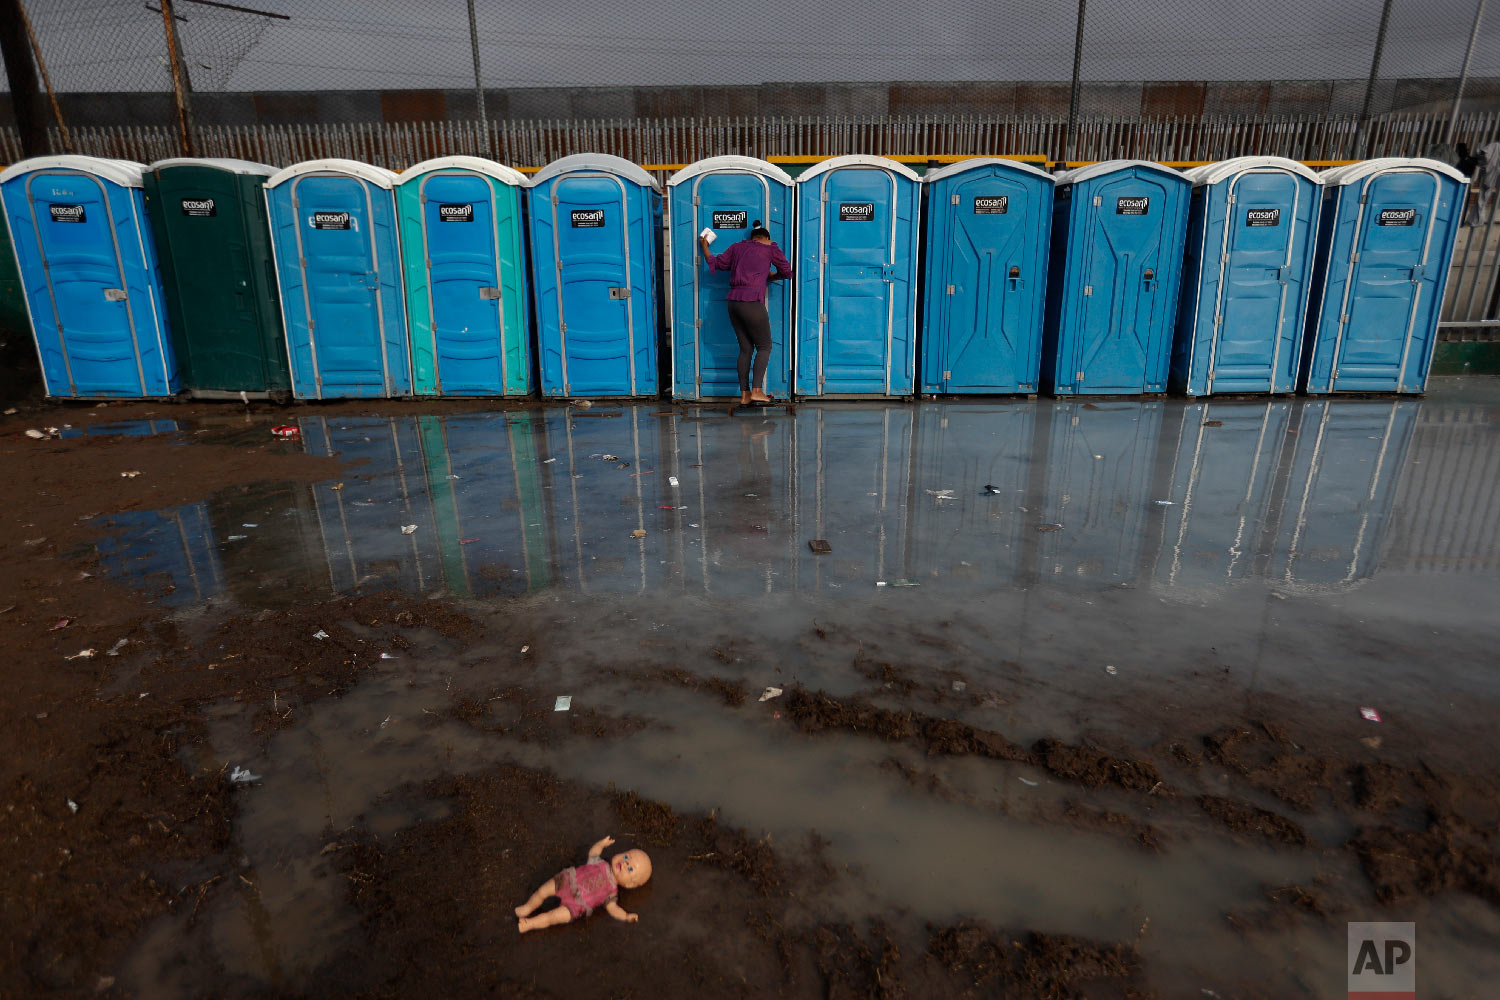 A woman searches a shower and rain flooded area for a toilet in acceptable condition at a sports complex sheltering thousands of Central Americans hoping to enter the U.S., in Tijuana, Mexico, Thursday, Nov. 29, 2018.  (AP Photo/Rebecca Blackwell)